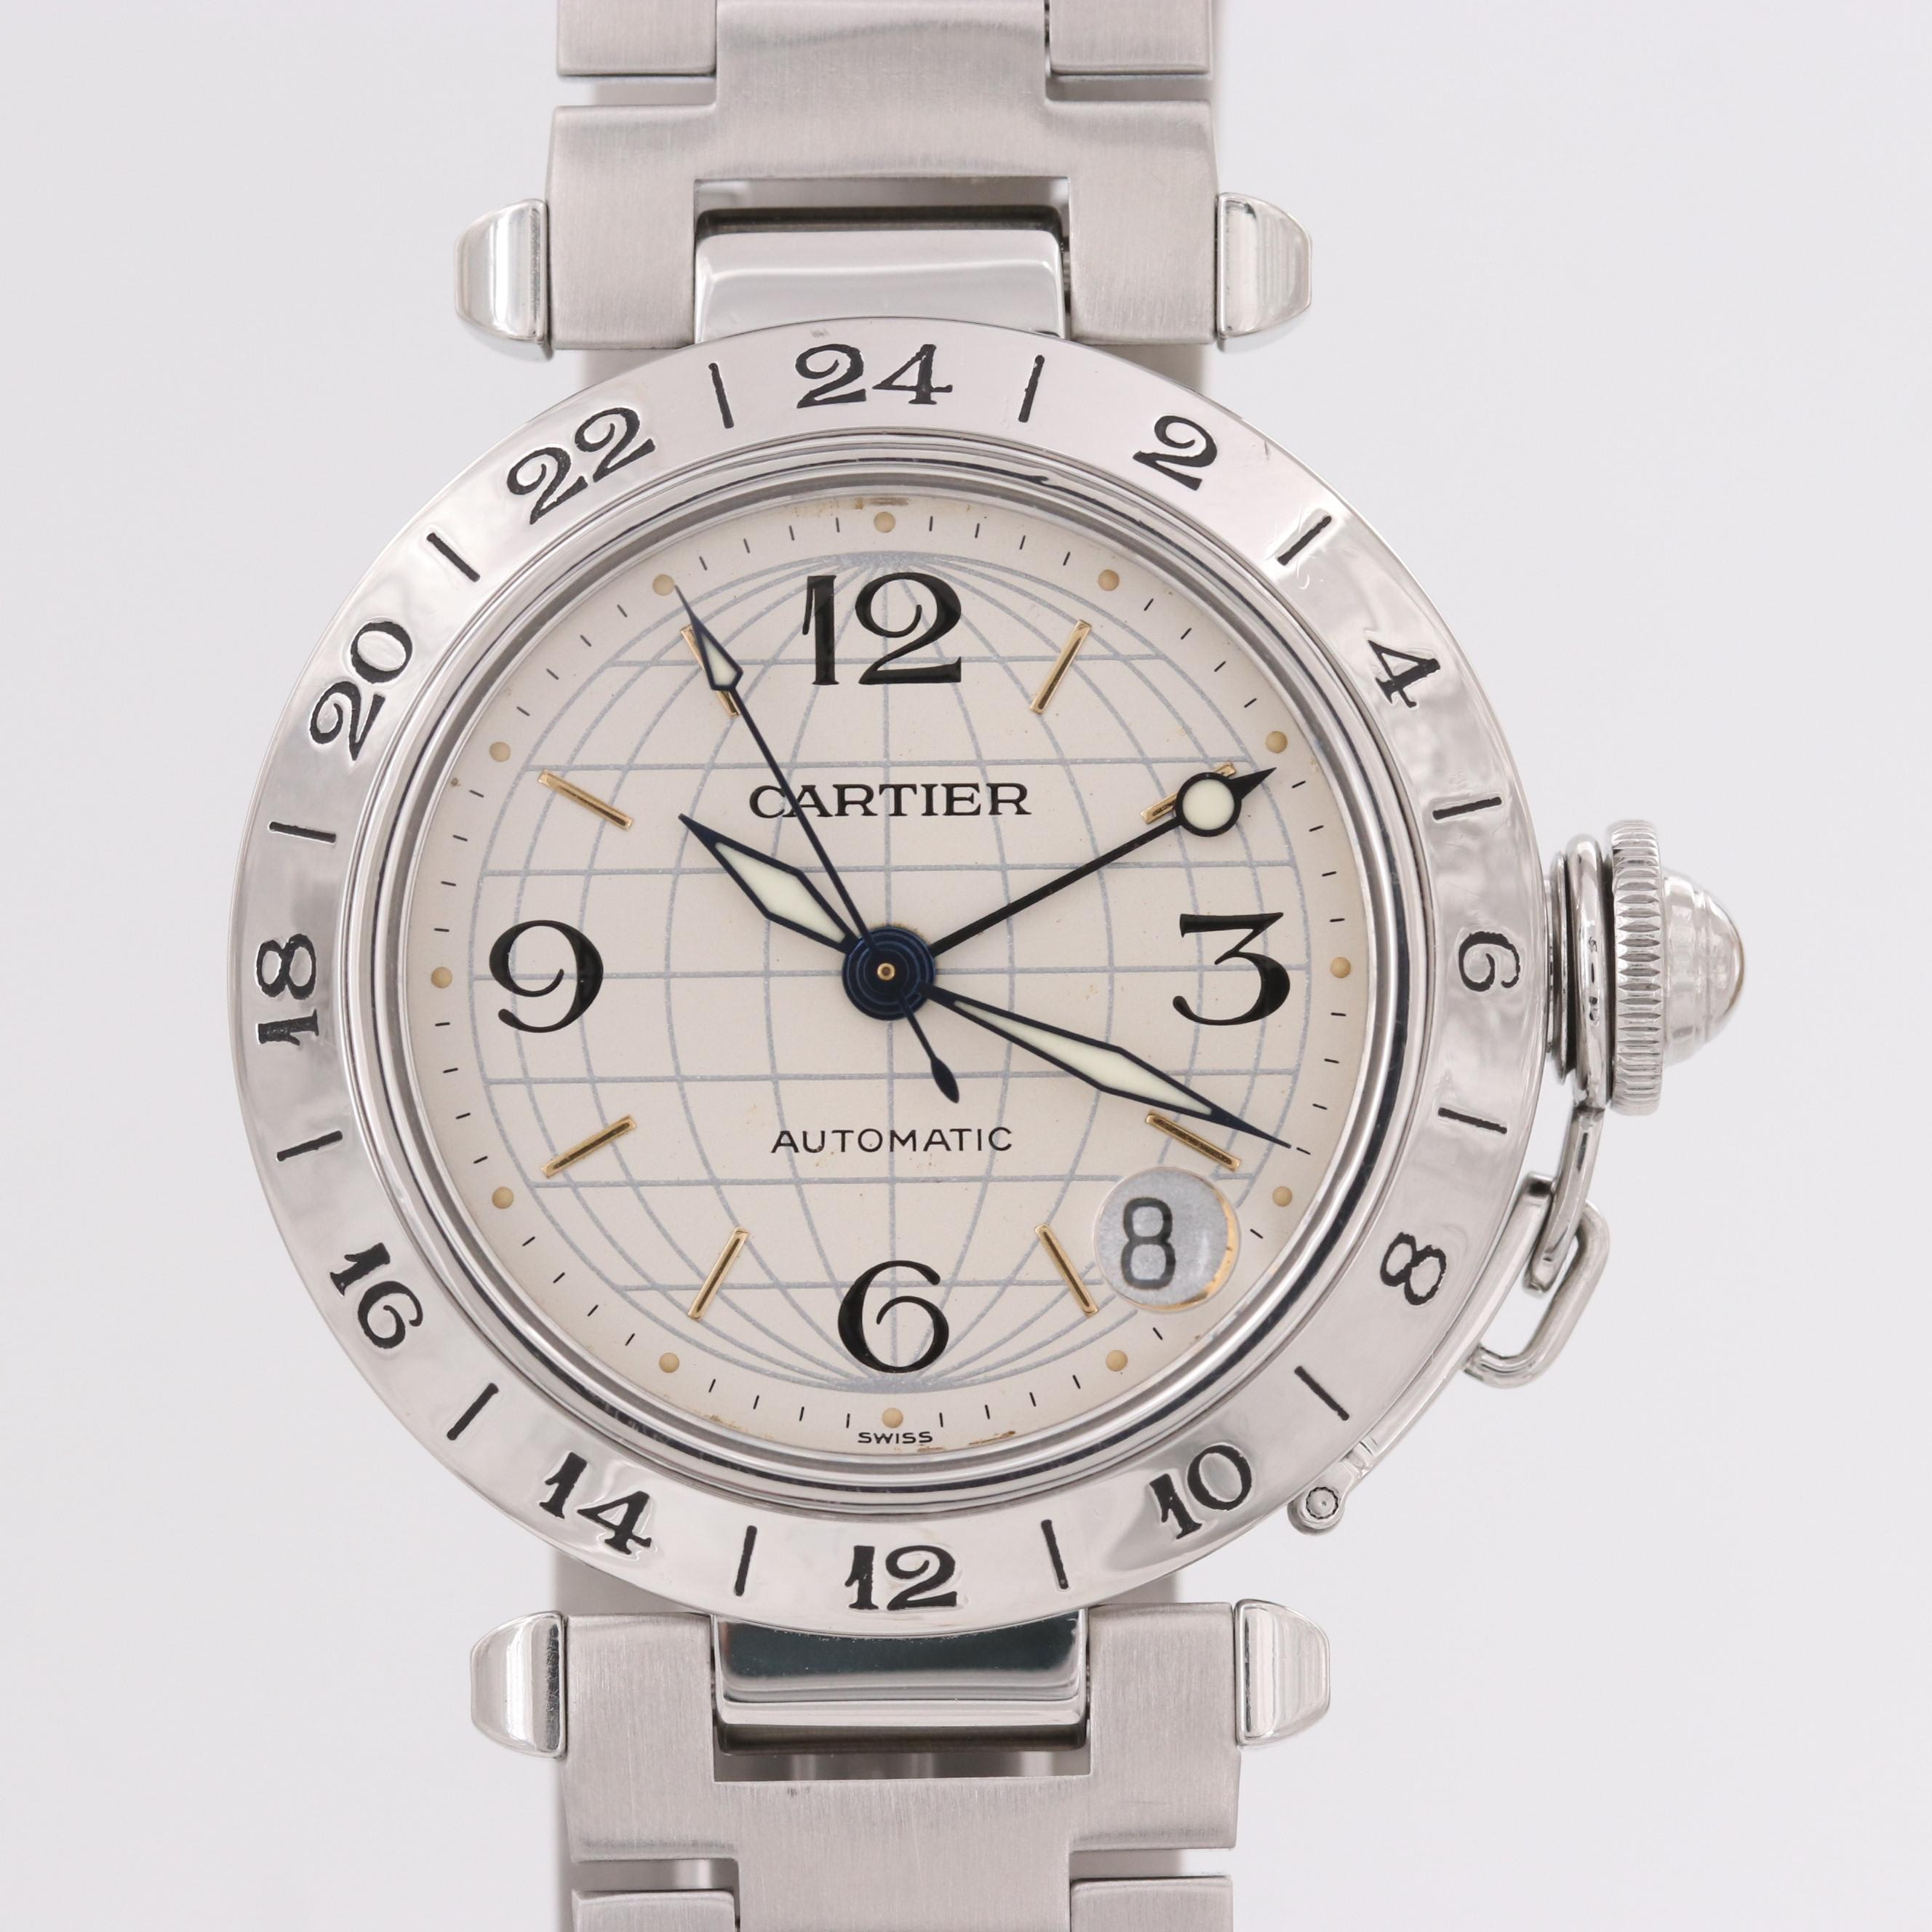 Cartier Pasha C GMT Stainless Steel Automatic Wristwatch